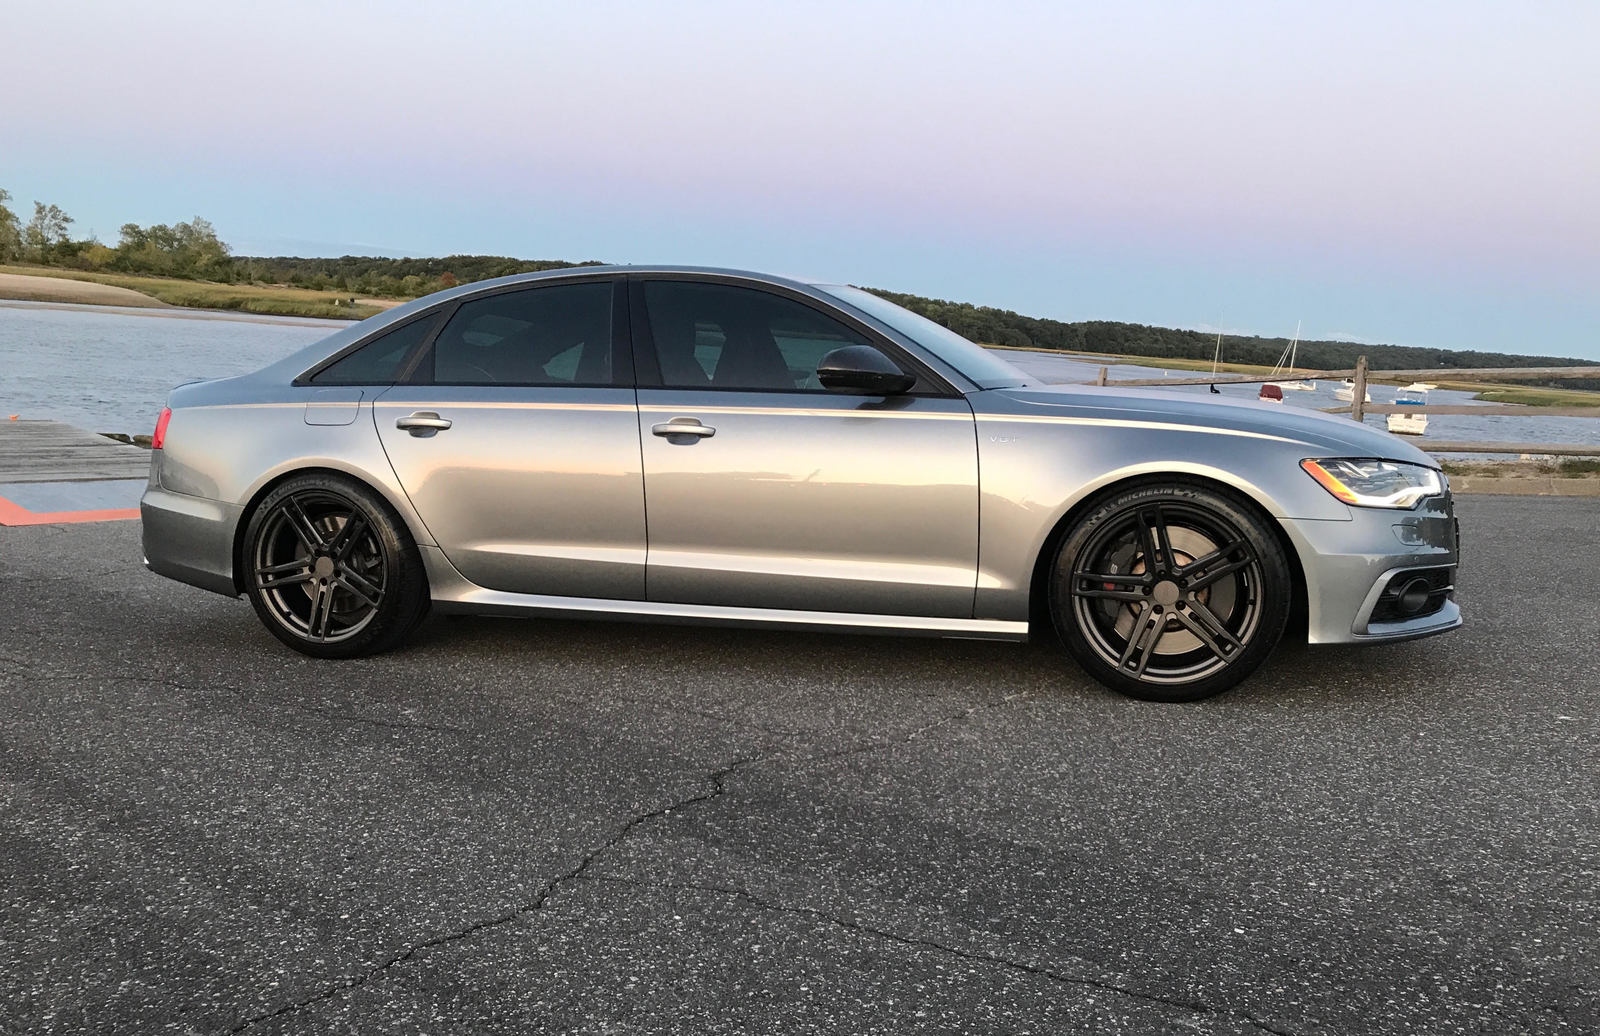 2014 Audi S6 Pictures, Mods, Upgrades, Wallpaper - DragTimes com